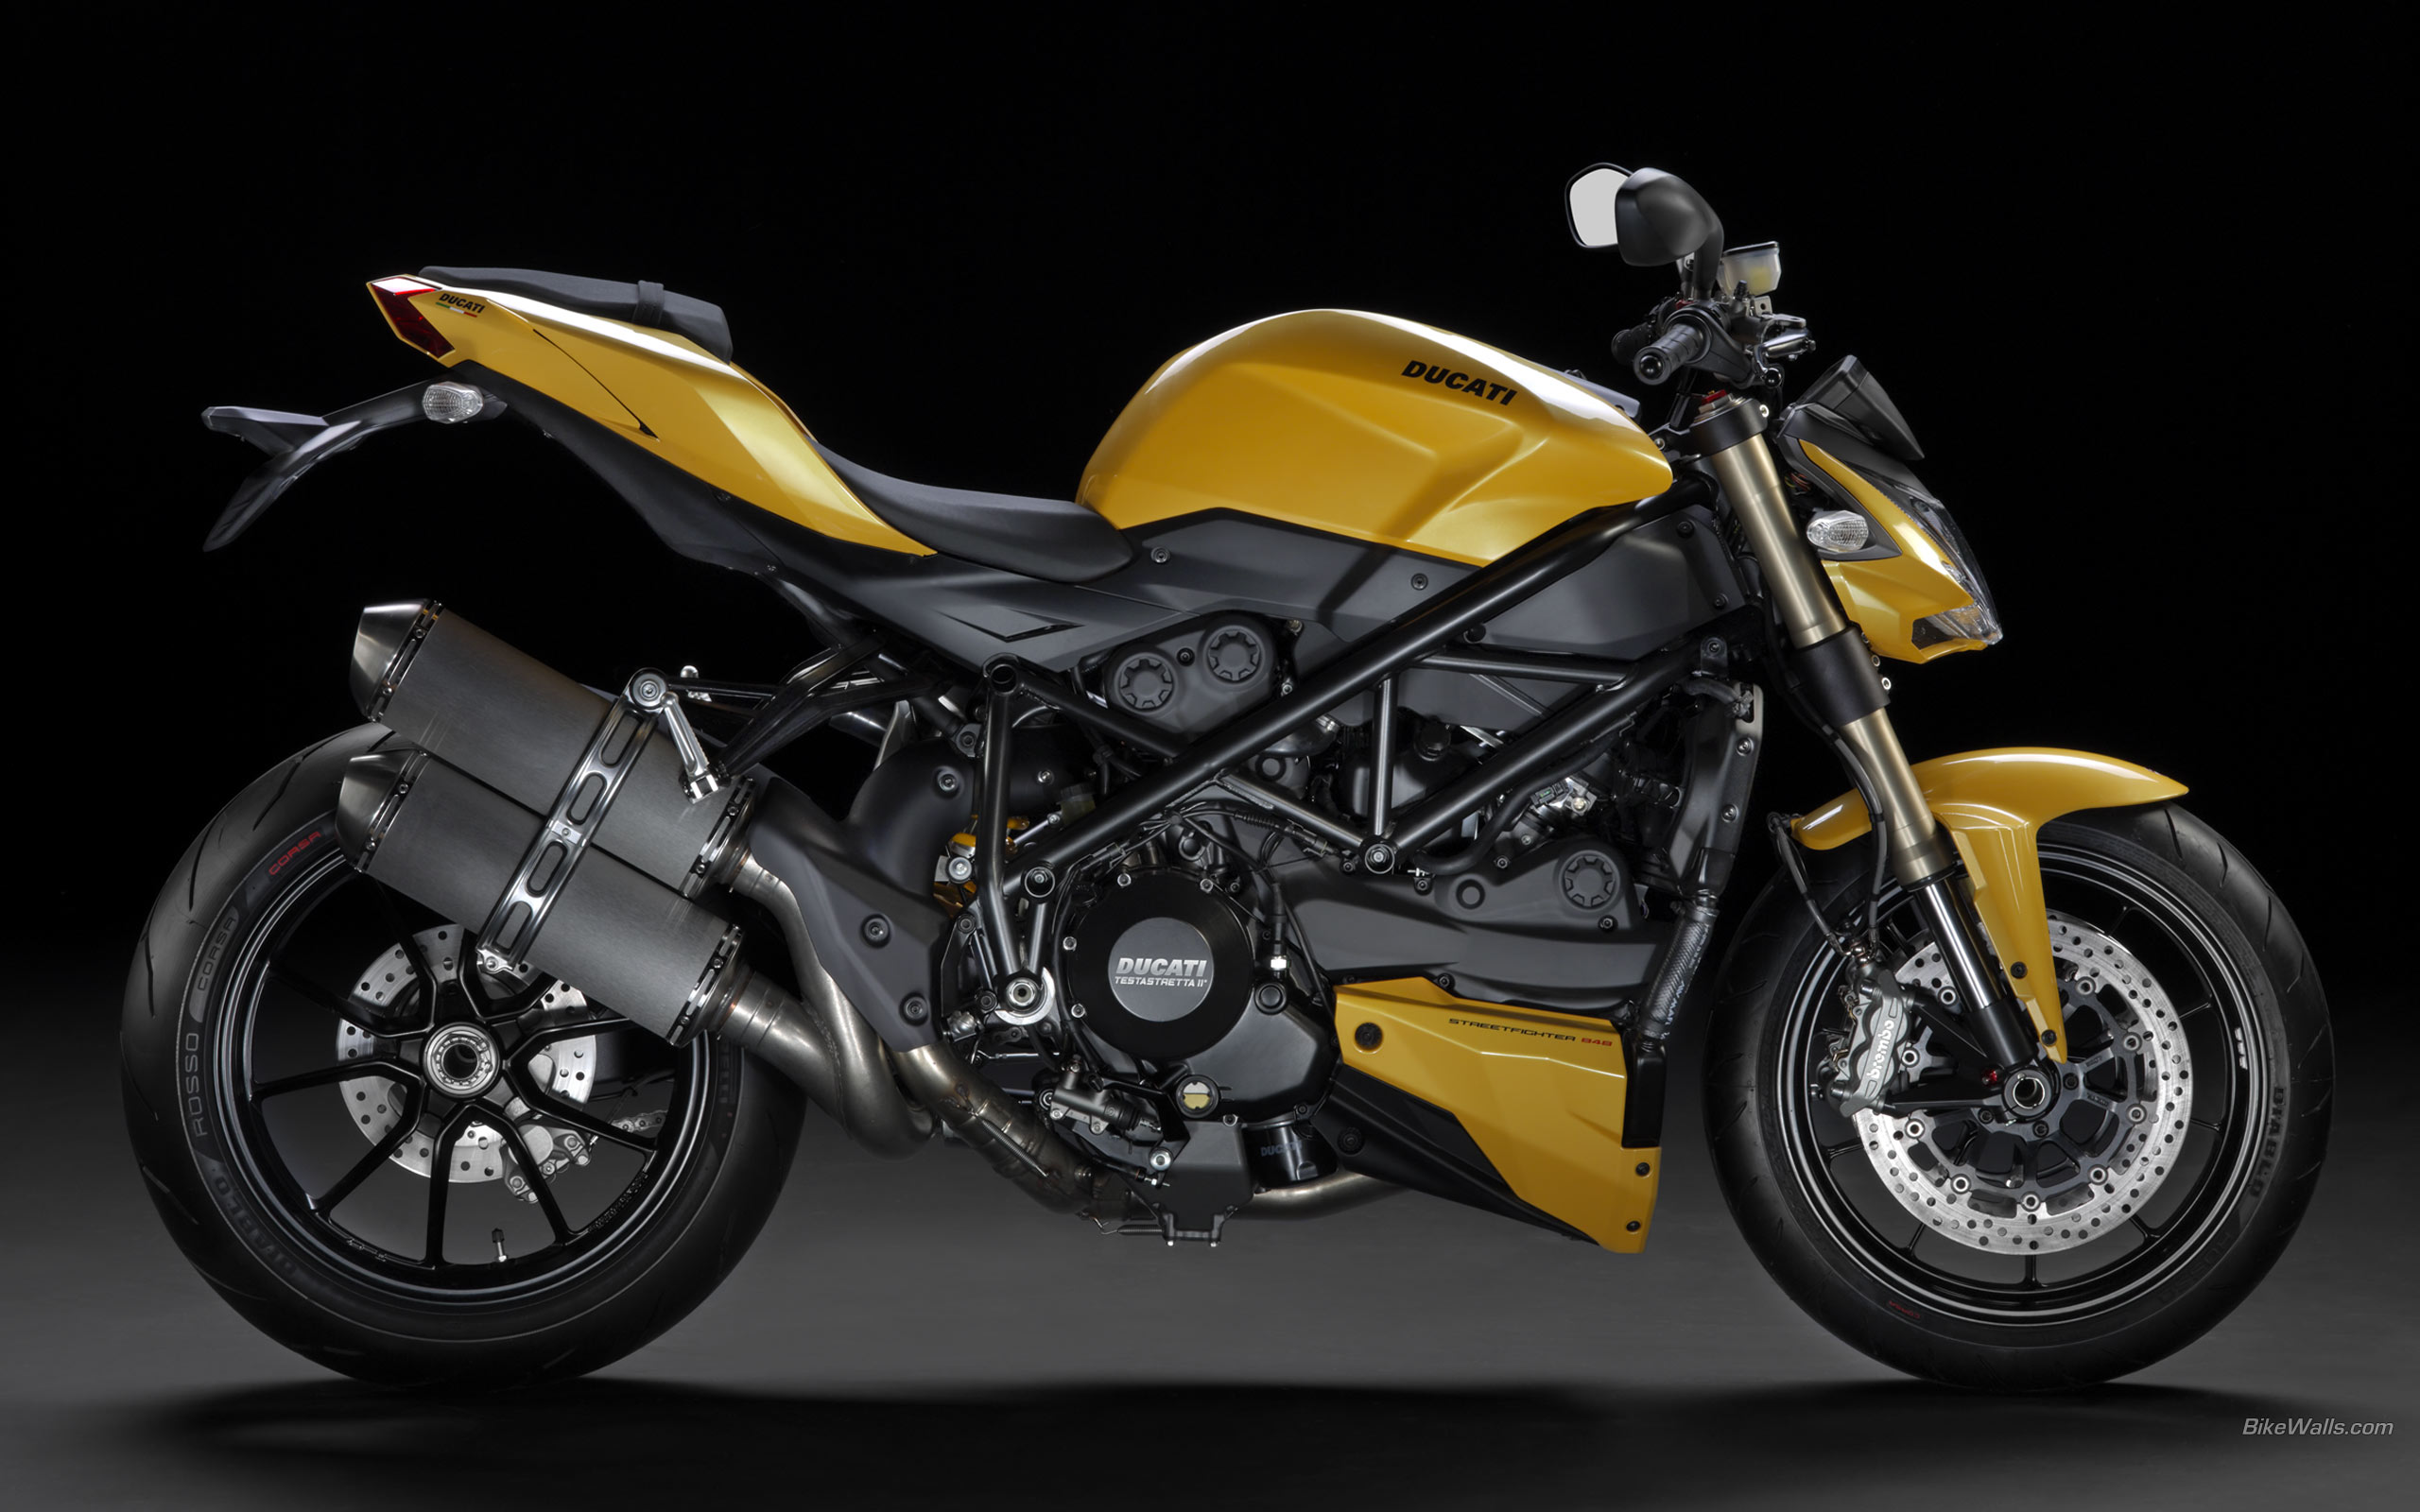 Ducati Streetfighter 848 Motorcycles Photo 31816598